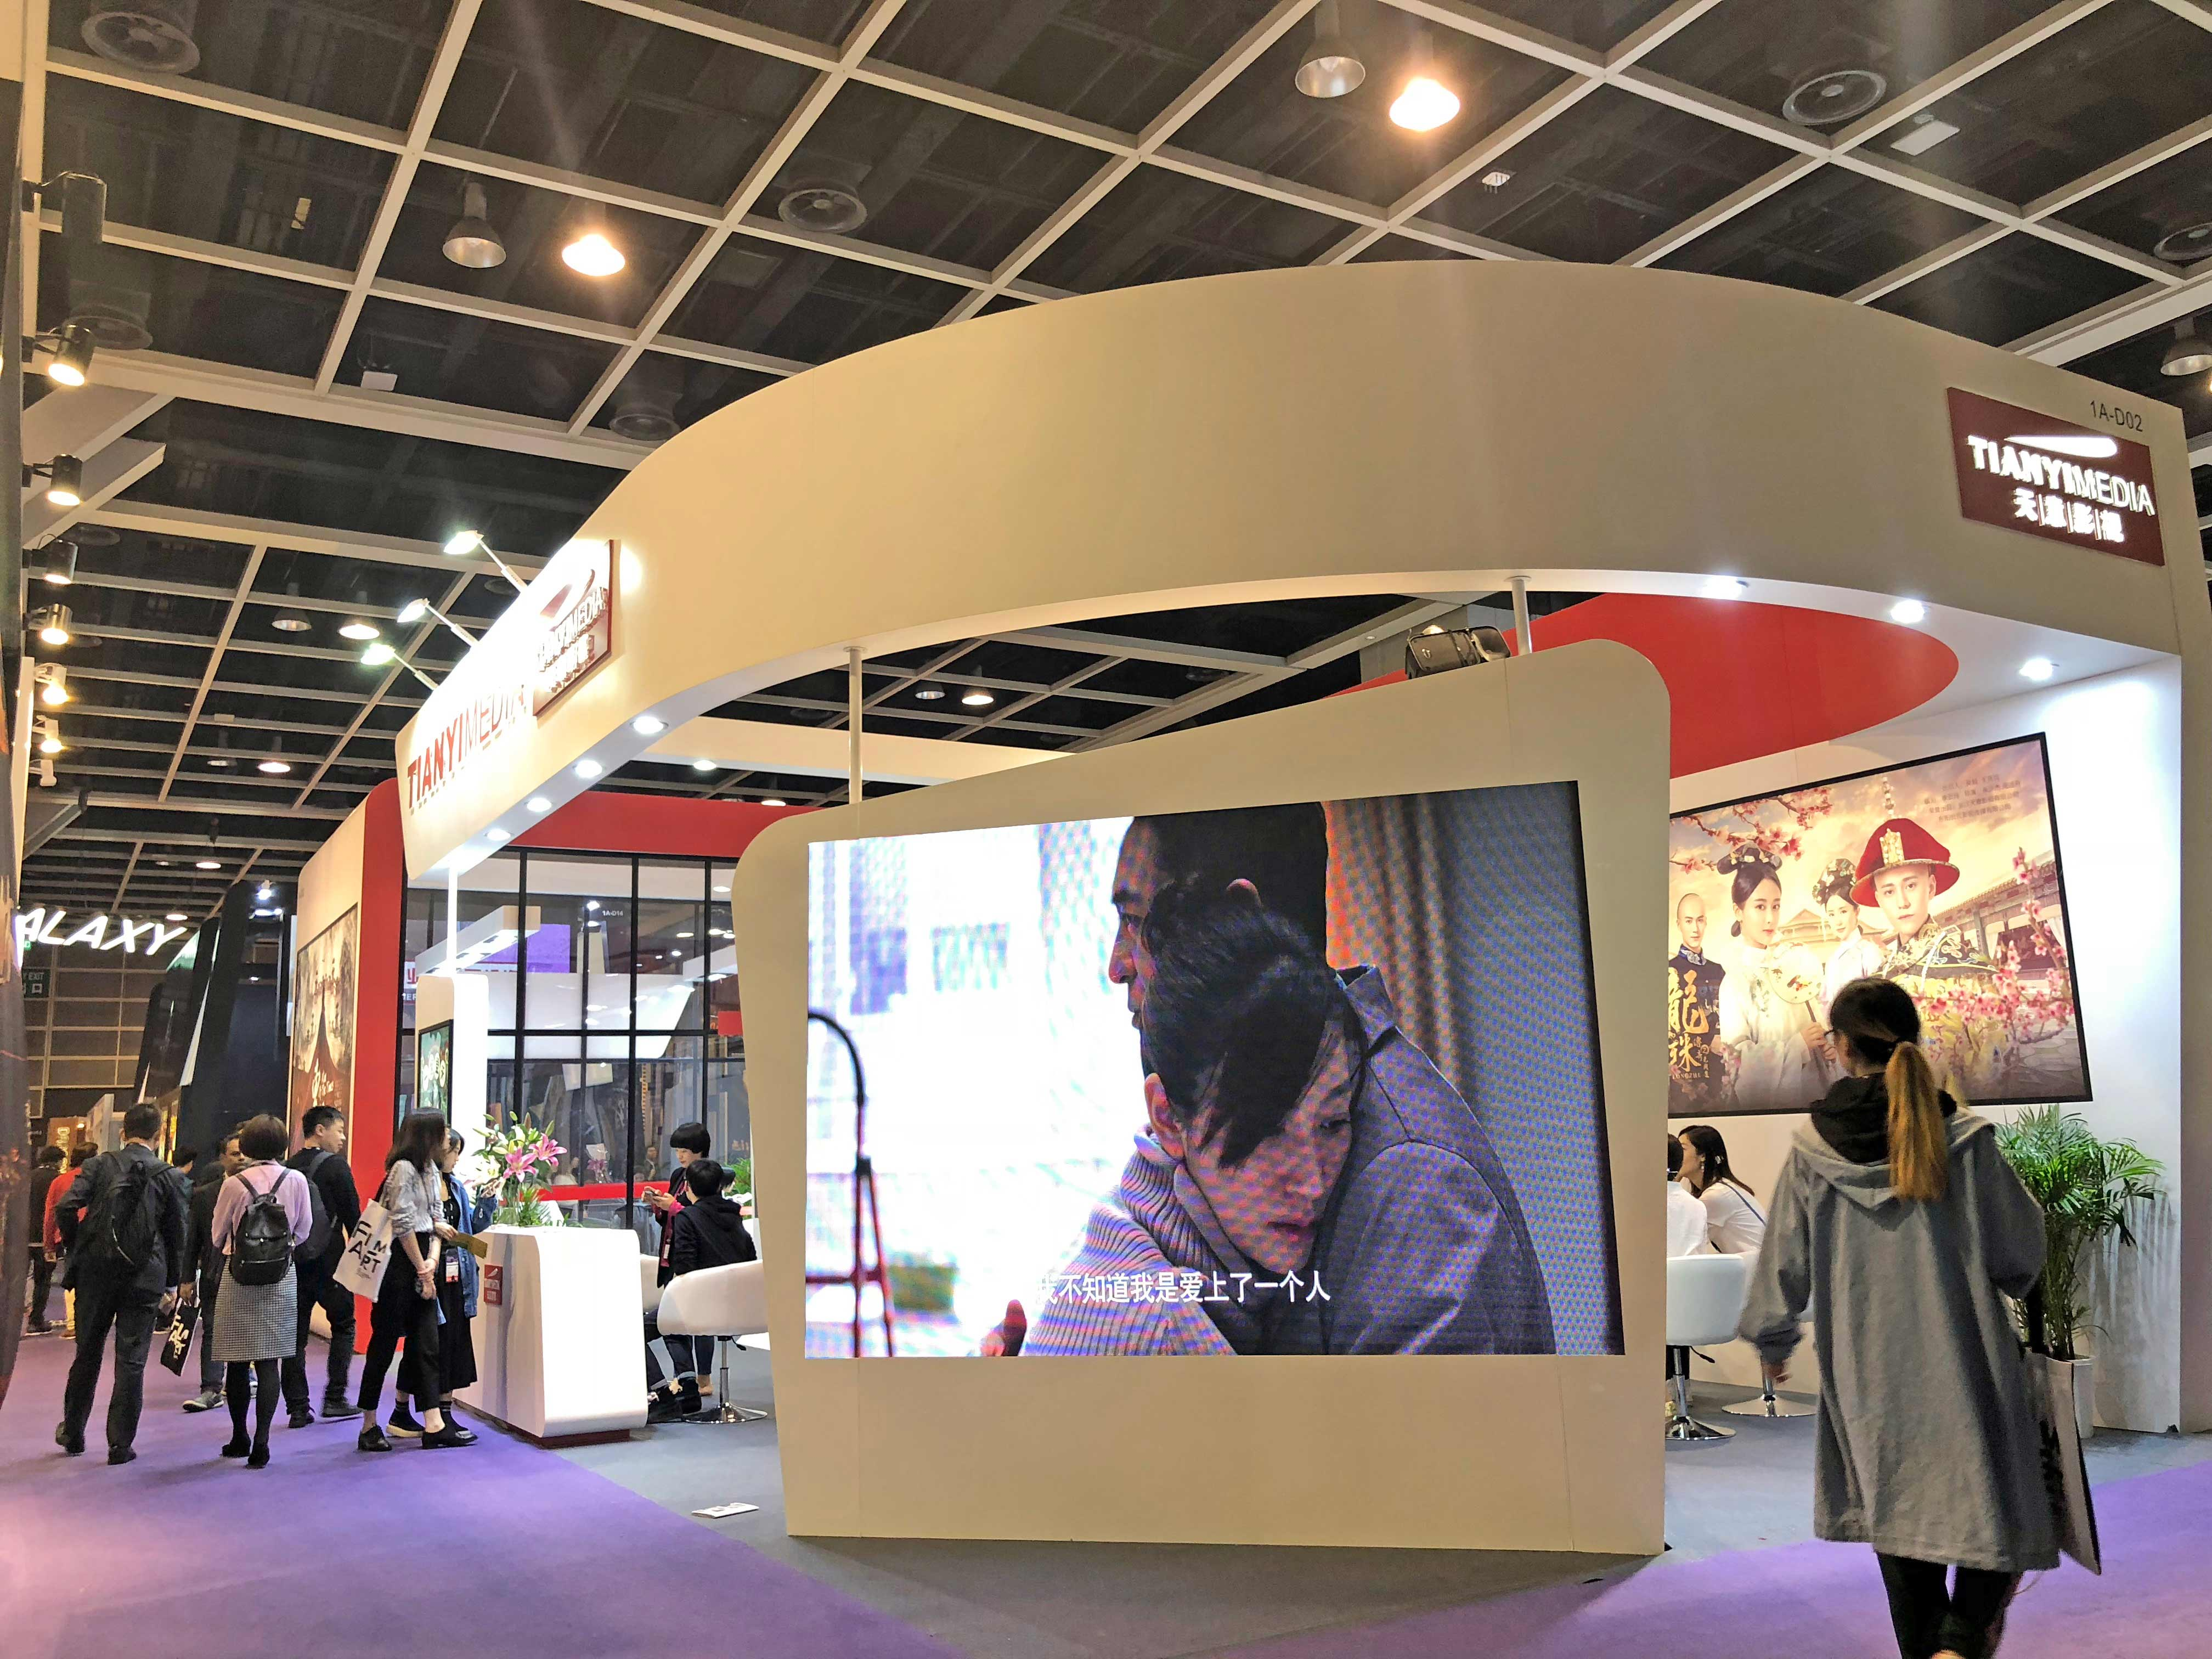 Cao Cao'' debuted at Hong Kong International Film & Television Fair